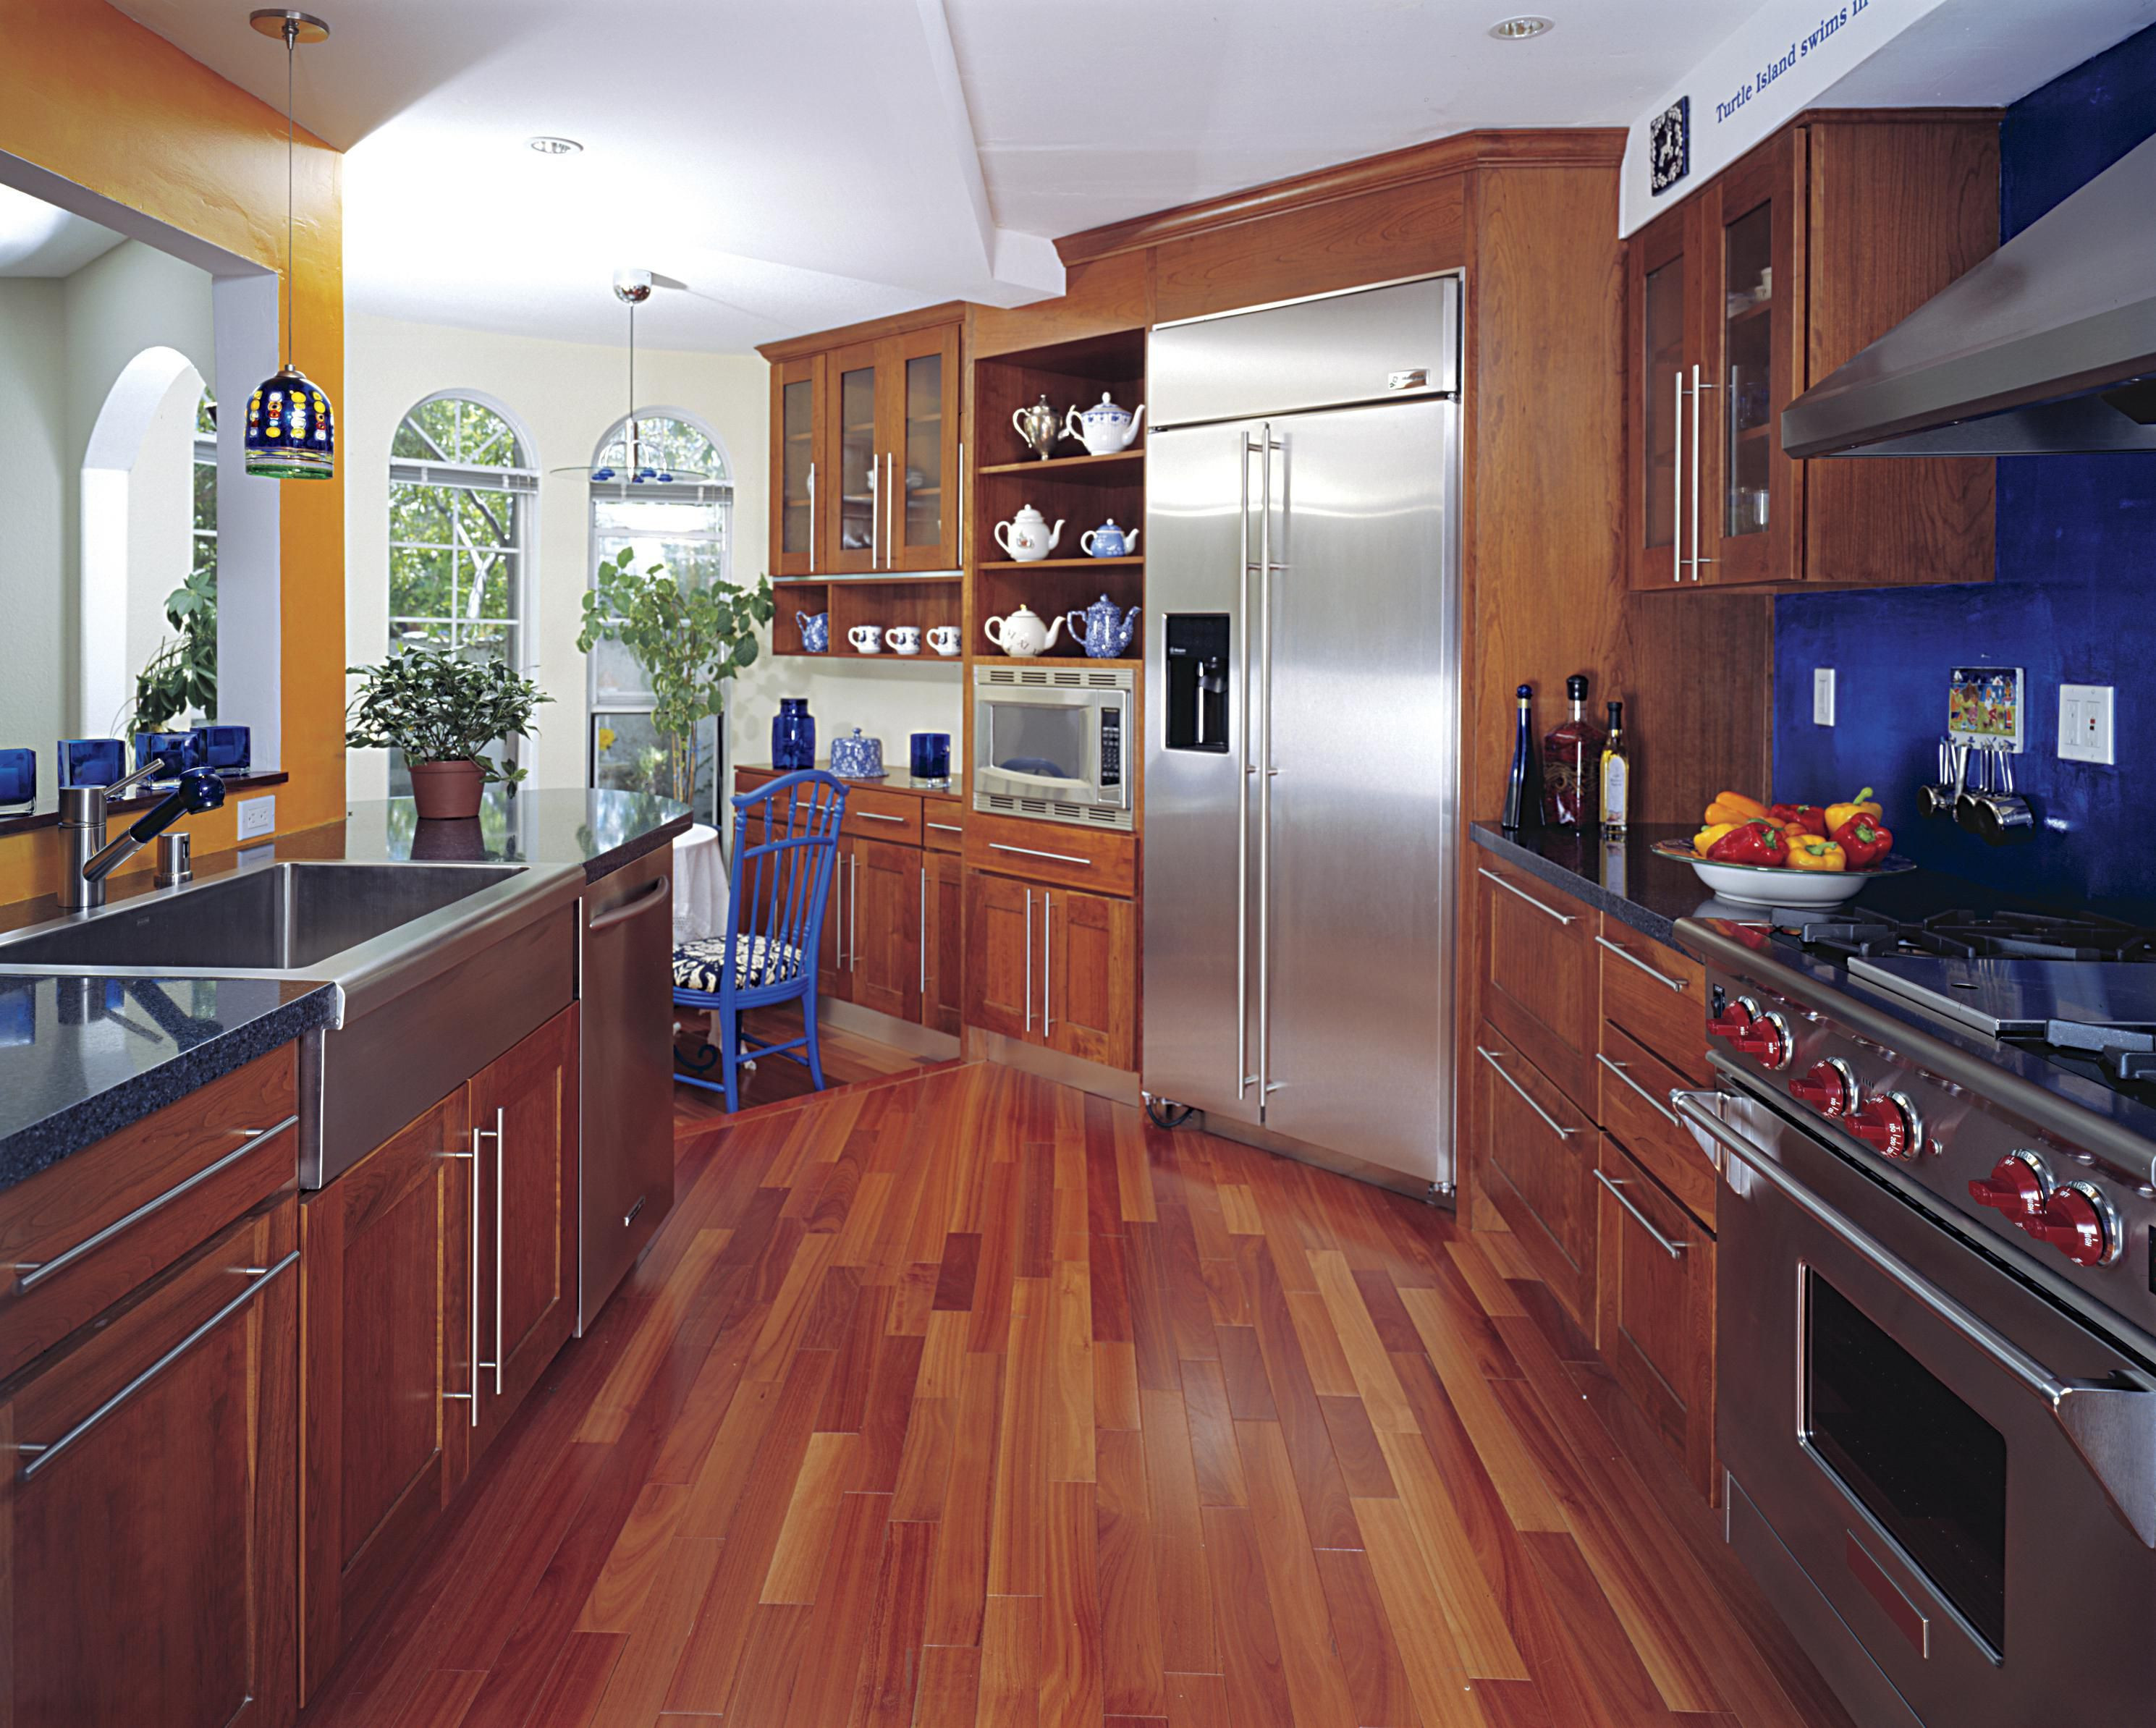 engineered hardwood flooring in bathrooms of hardwood floor in a kitchen is this allowed pertaining to 186828472 56a49f3a5f9b58b7d0d7e142